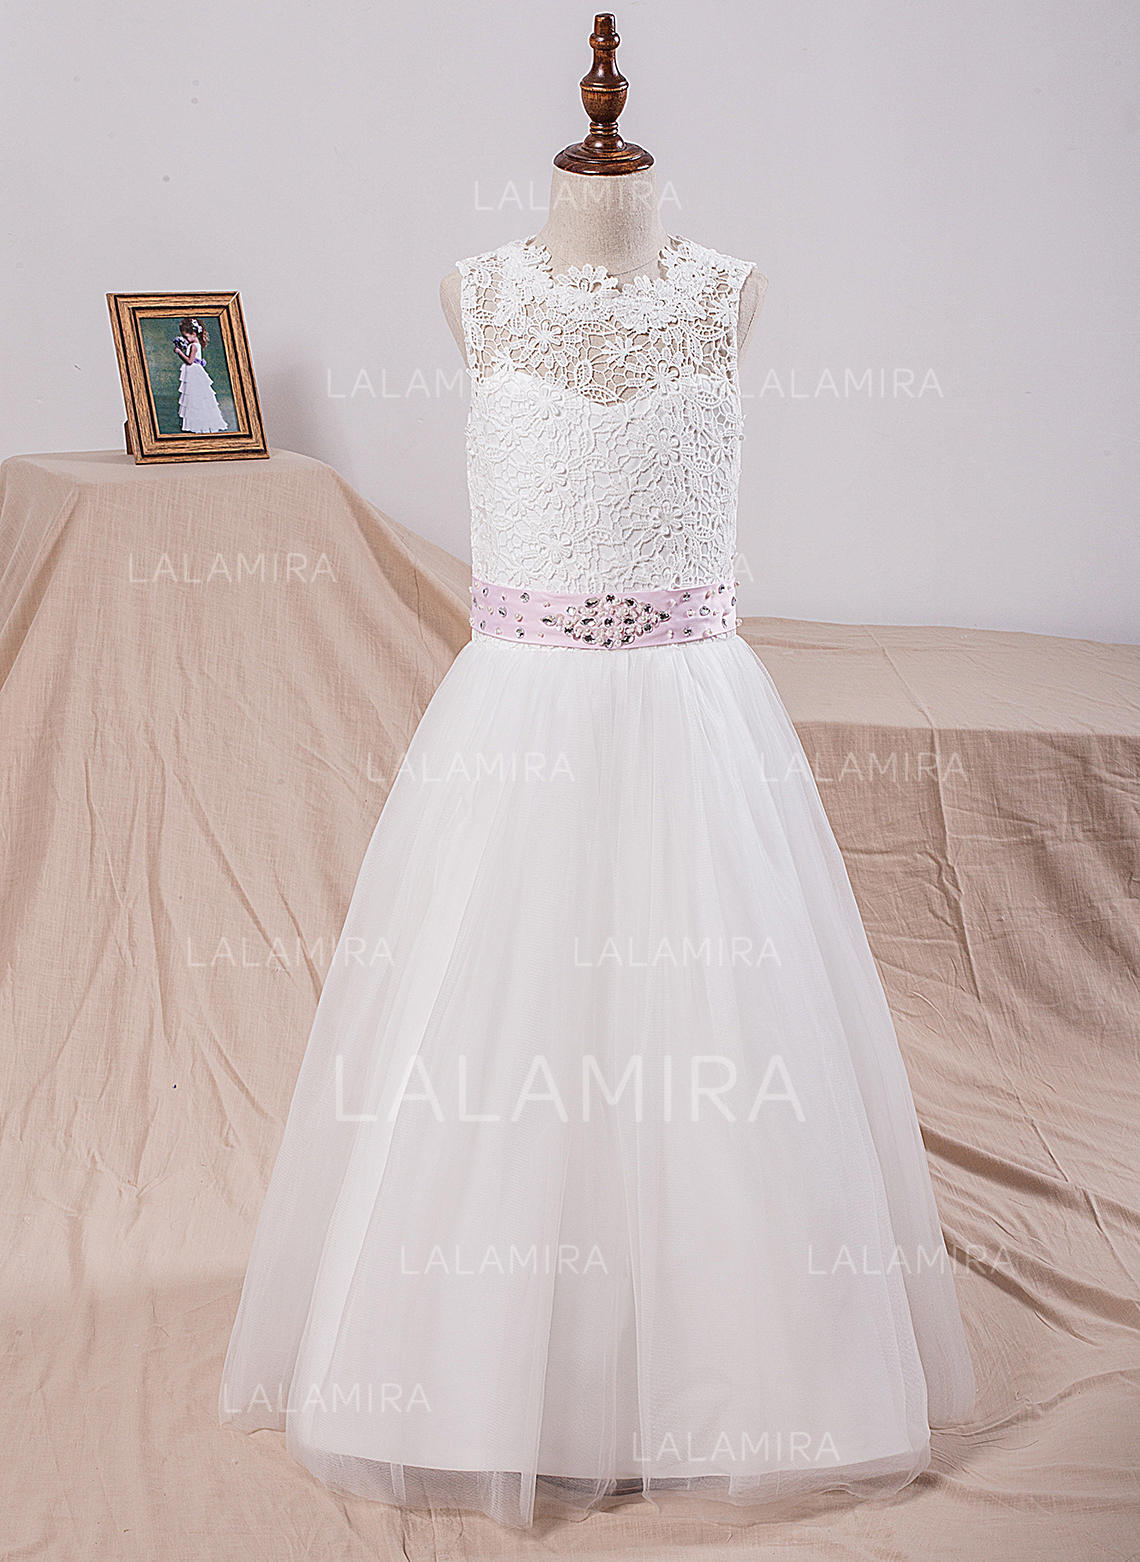 2e3ae1d474b17 Scoop Neck A-Line/Princess Flower Girl Dresses Tulle/Lace Sash/Bow. Loading  zoom